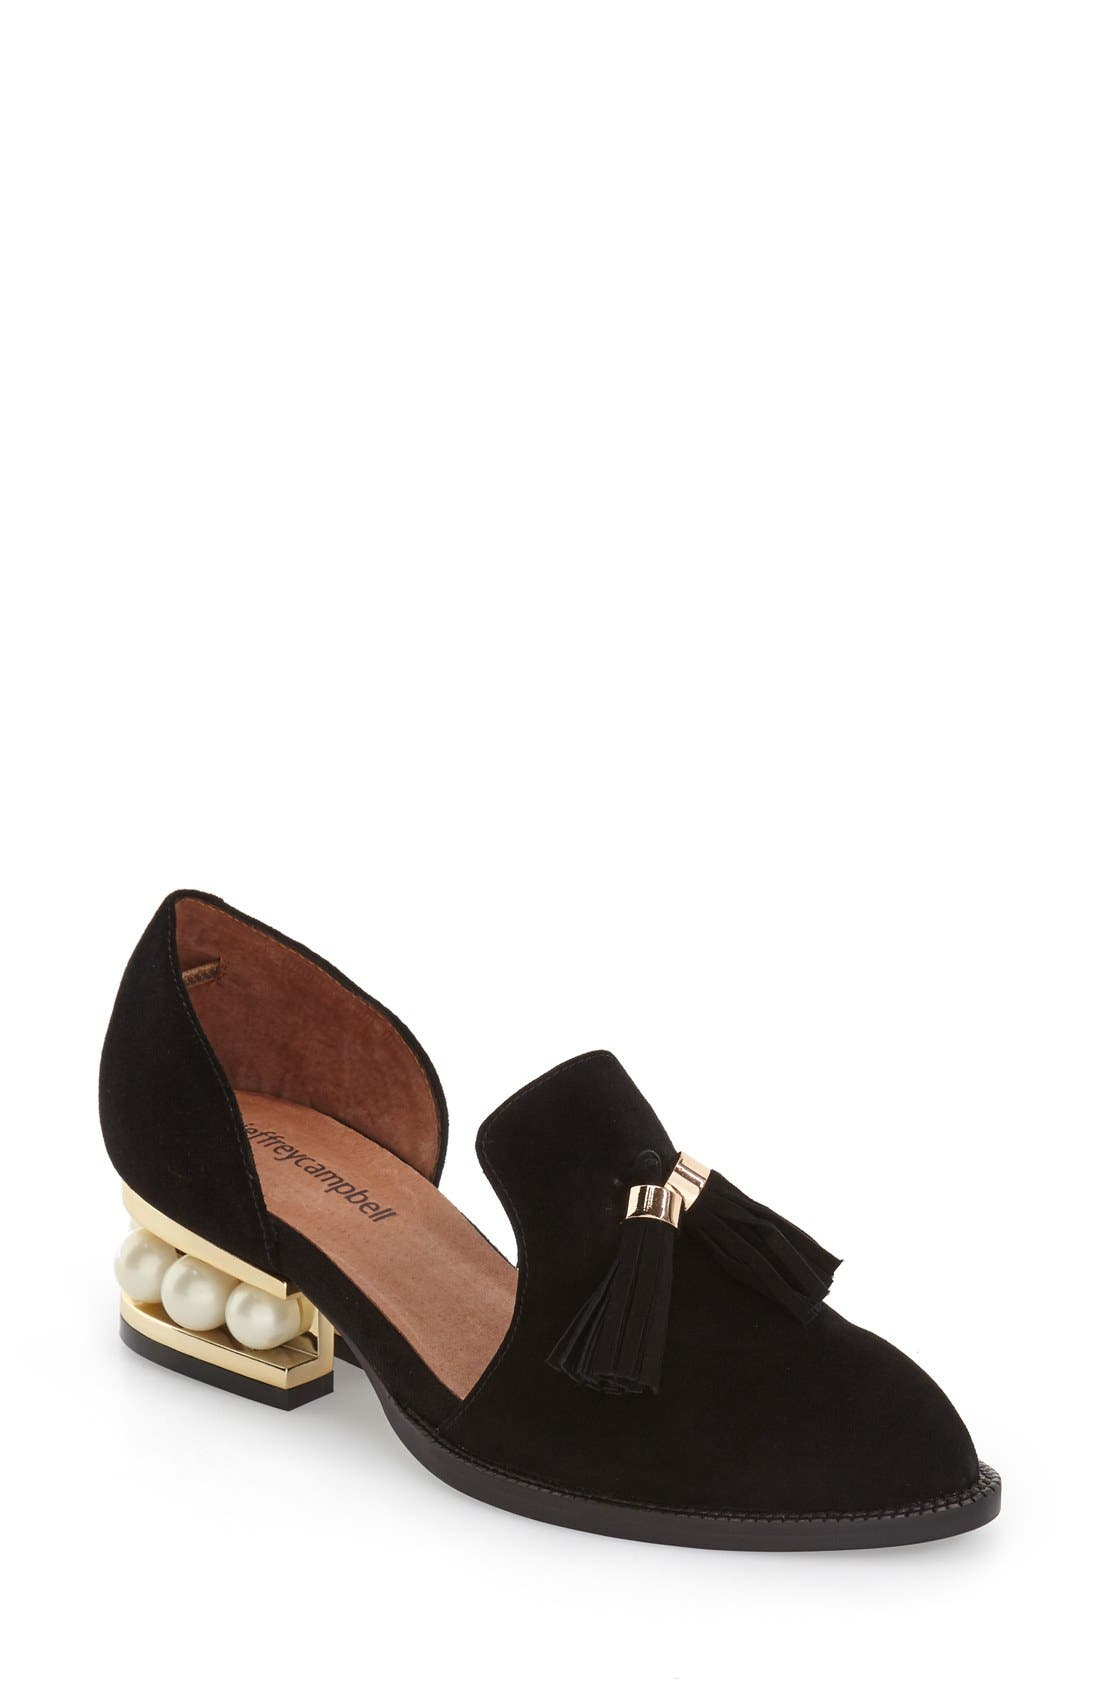 Alternate Image 1 Selected - Jeffrey Campbell 'Civil' Pearly Heeled Beaded Tassel Loafer (Women)